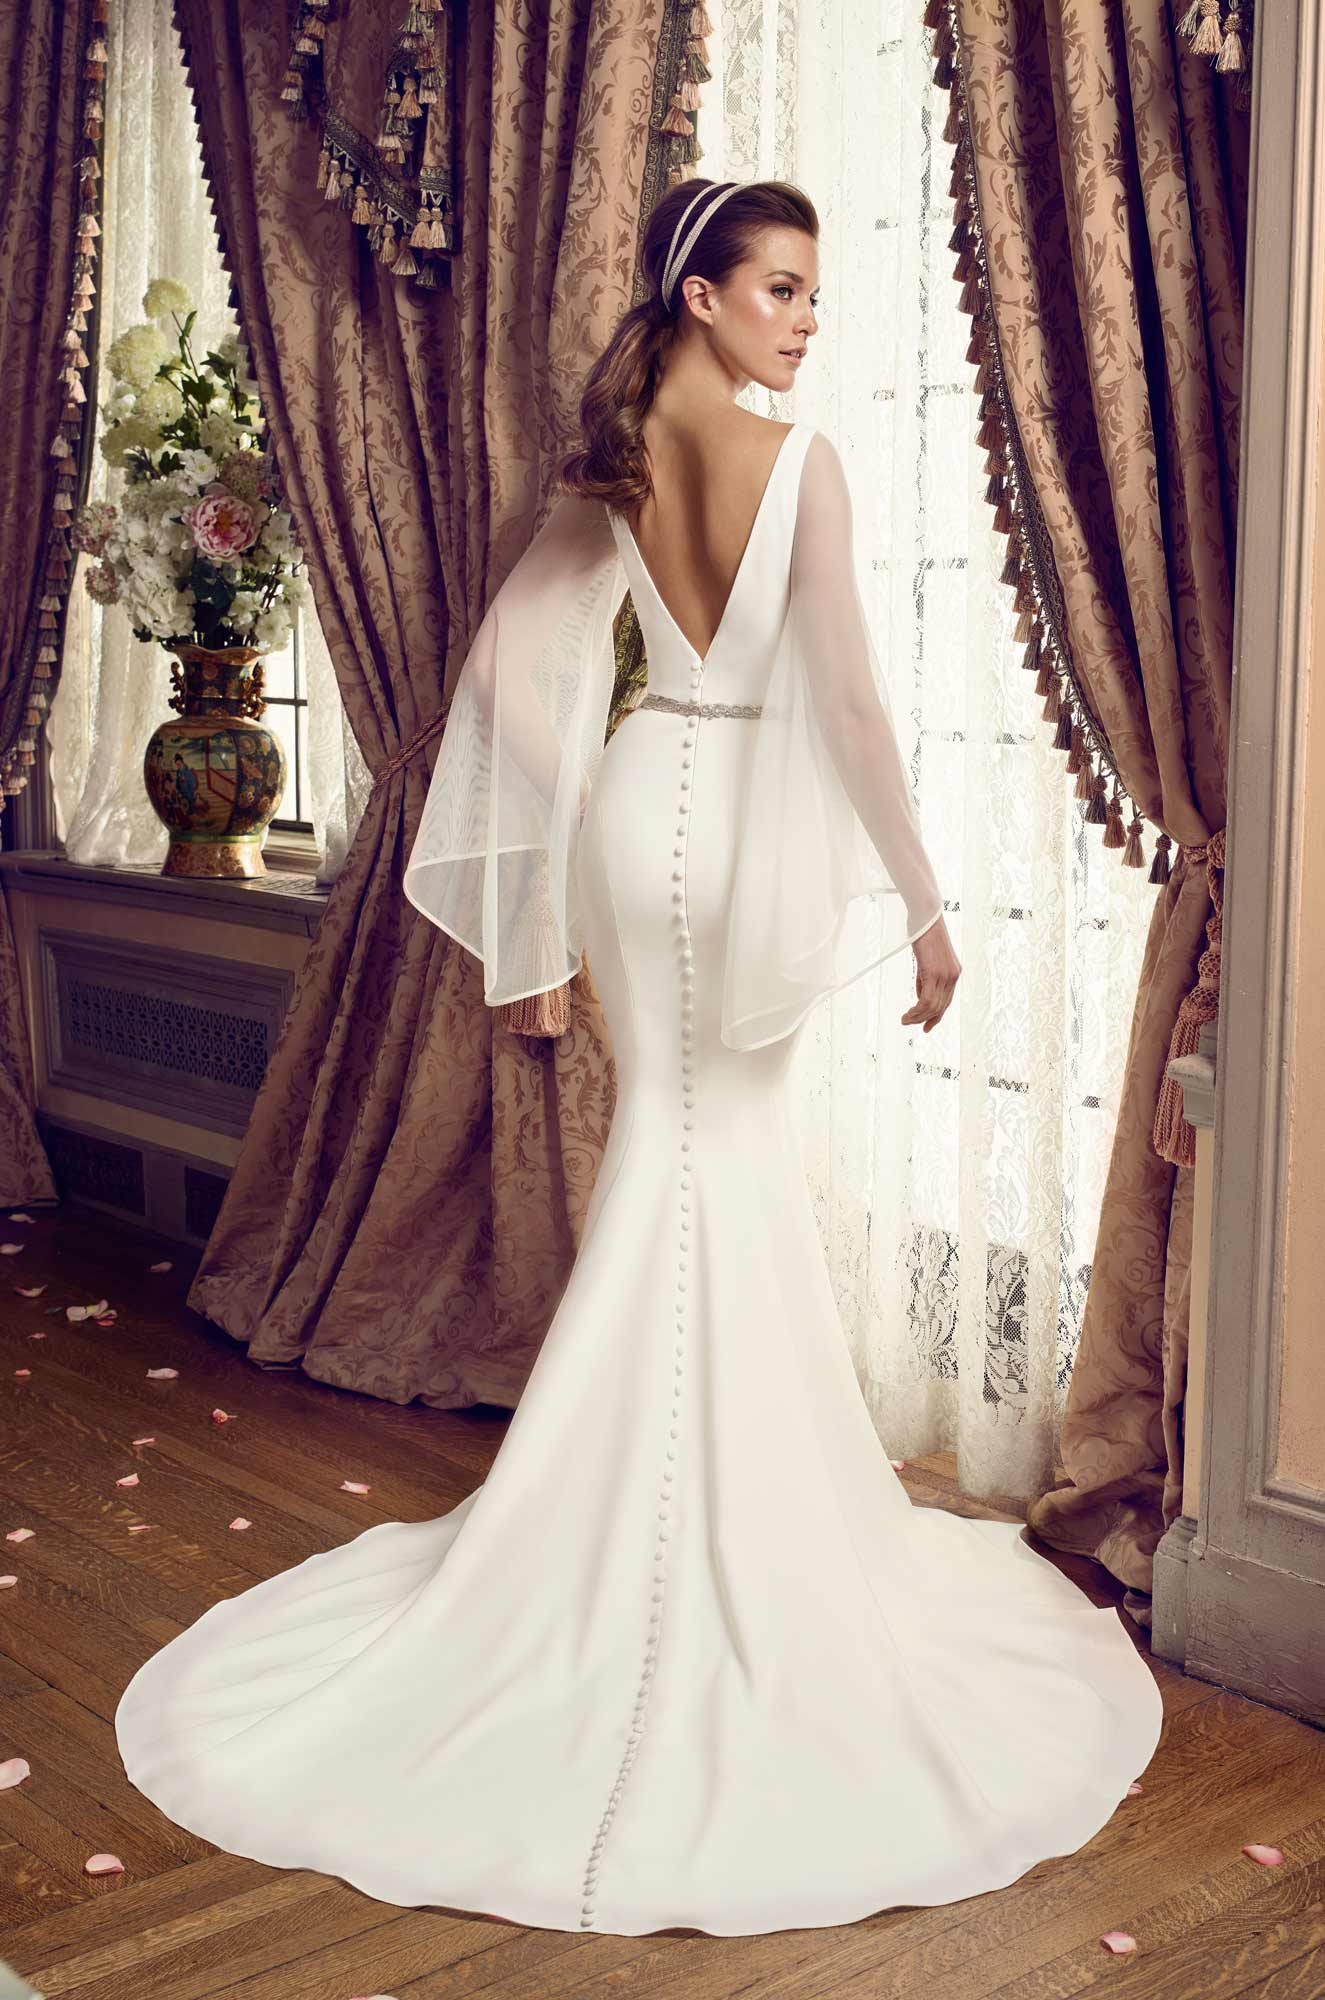 Bell Sleeve Wedding Dress - Style #2169 | Mikaella Bridal